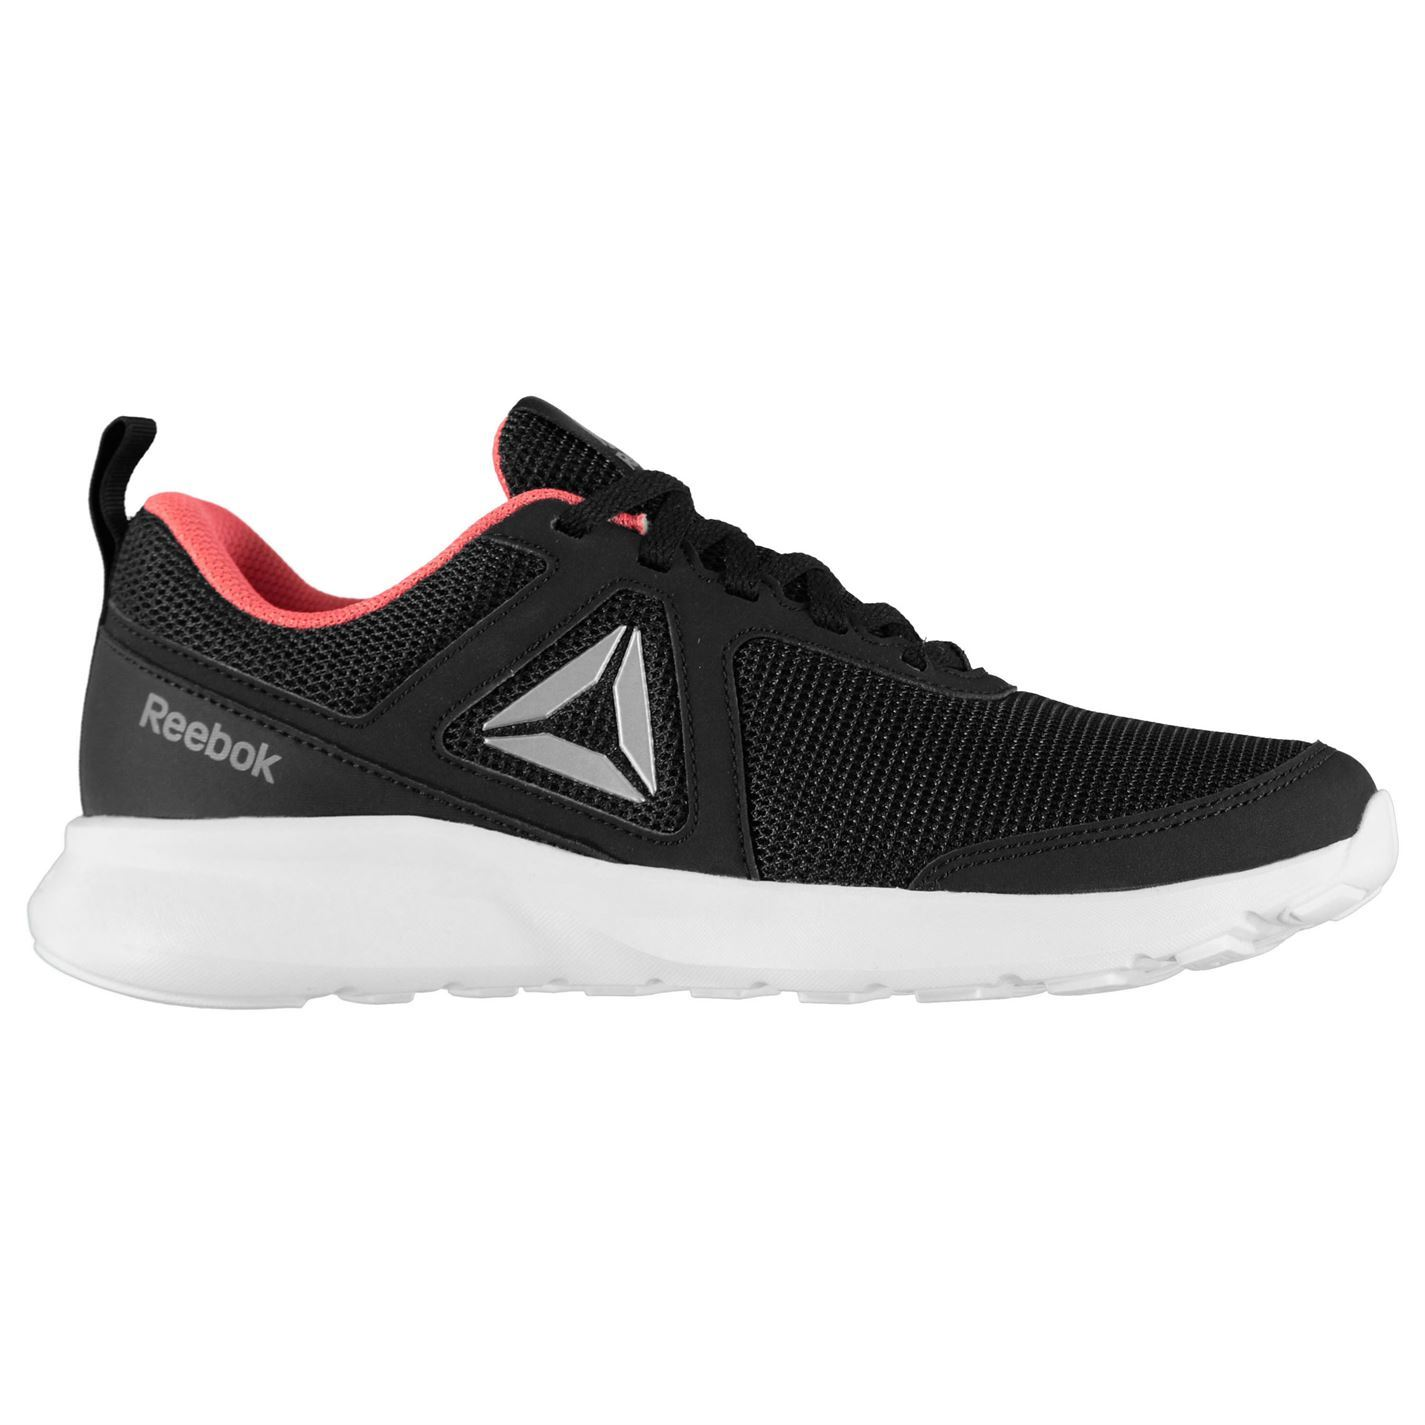 Details about Reebok Quick Motion Training Shoes Womens Fitness Gym Workout Trainers Sneakers